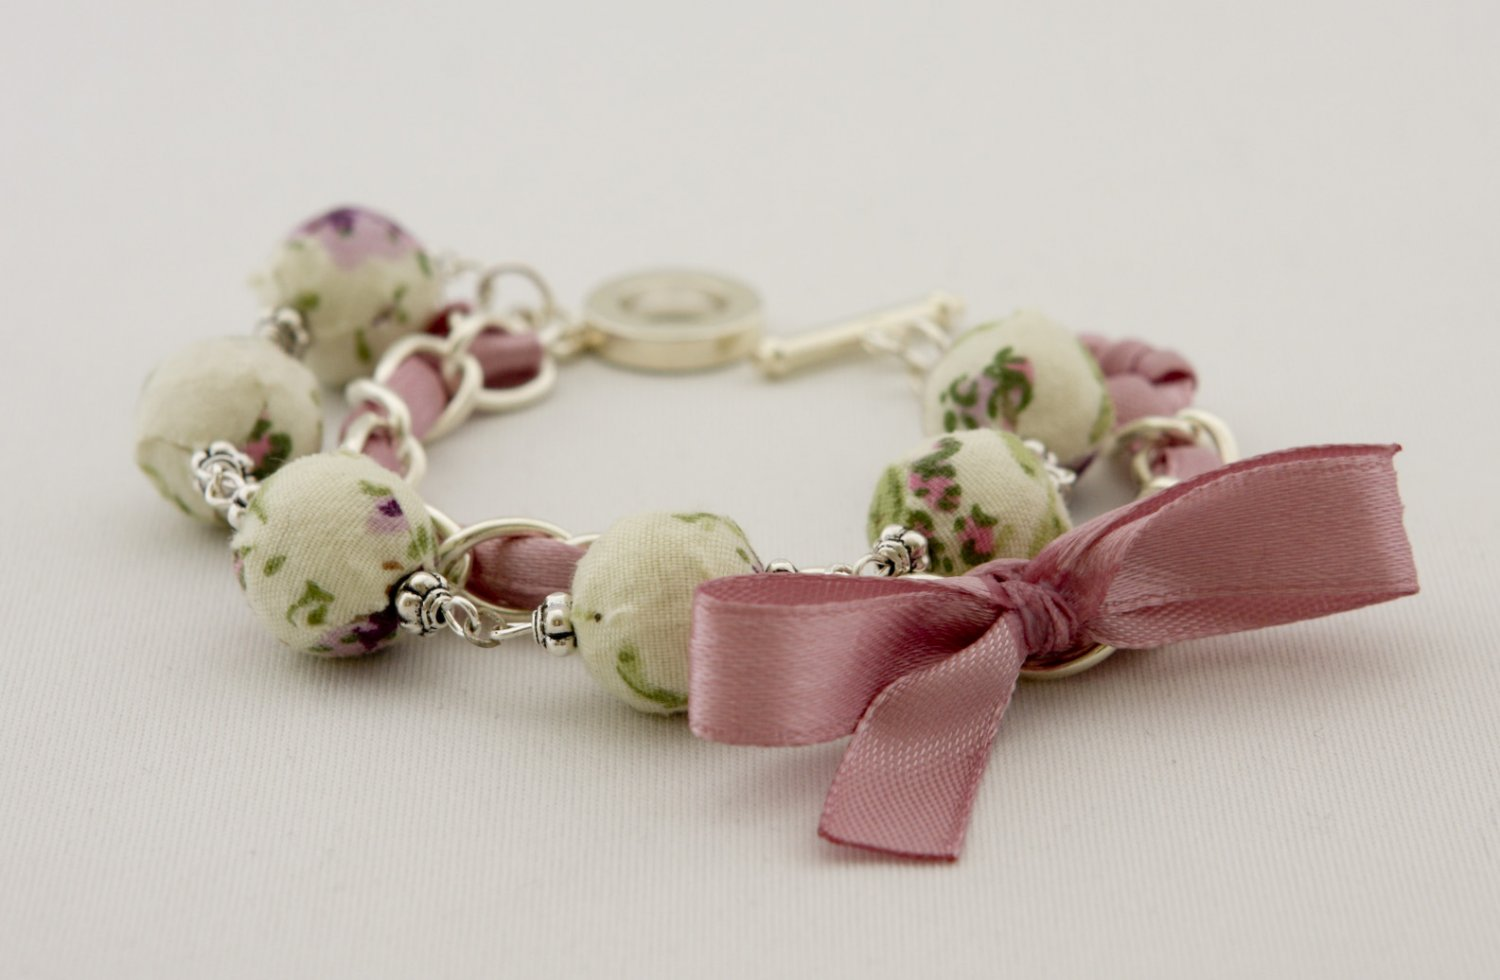 Floral cotton beads and orchid satin ribbon bracelet